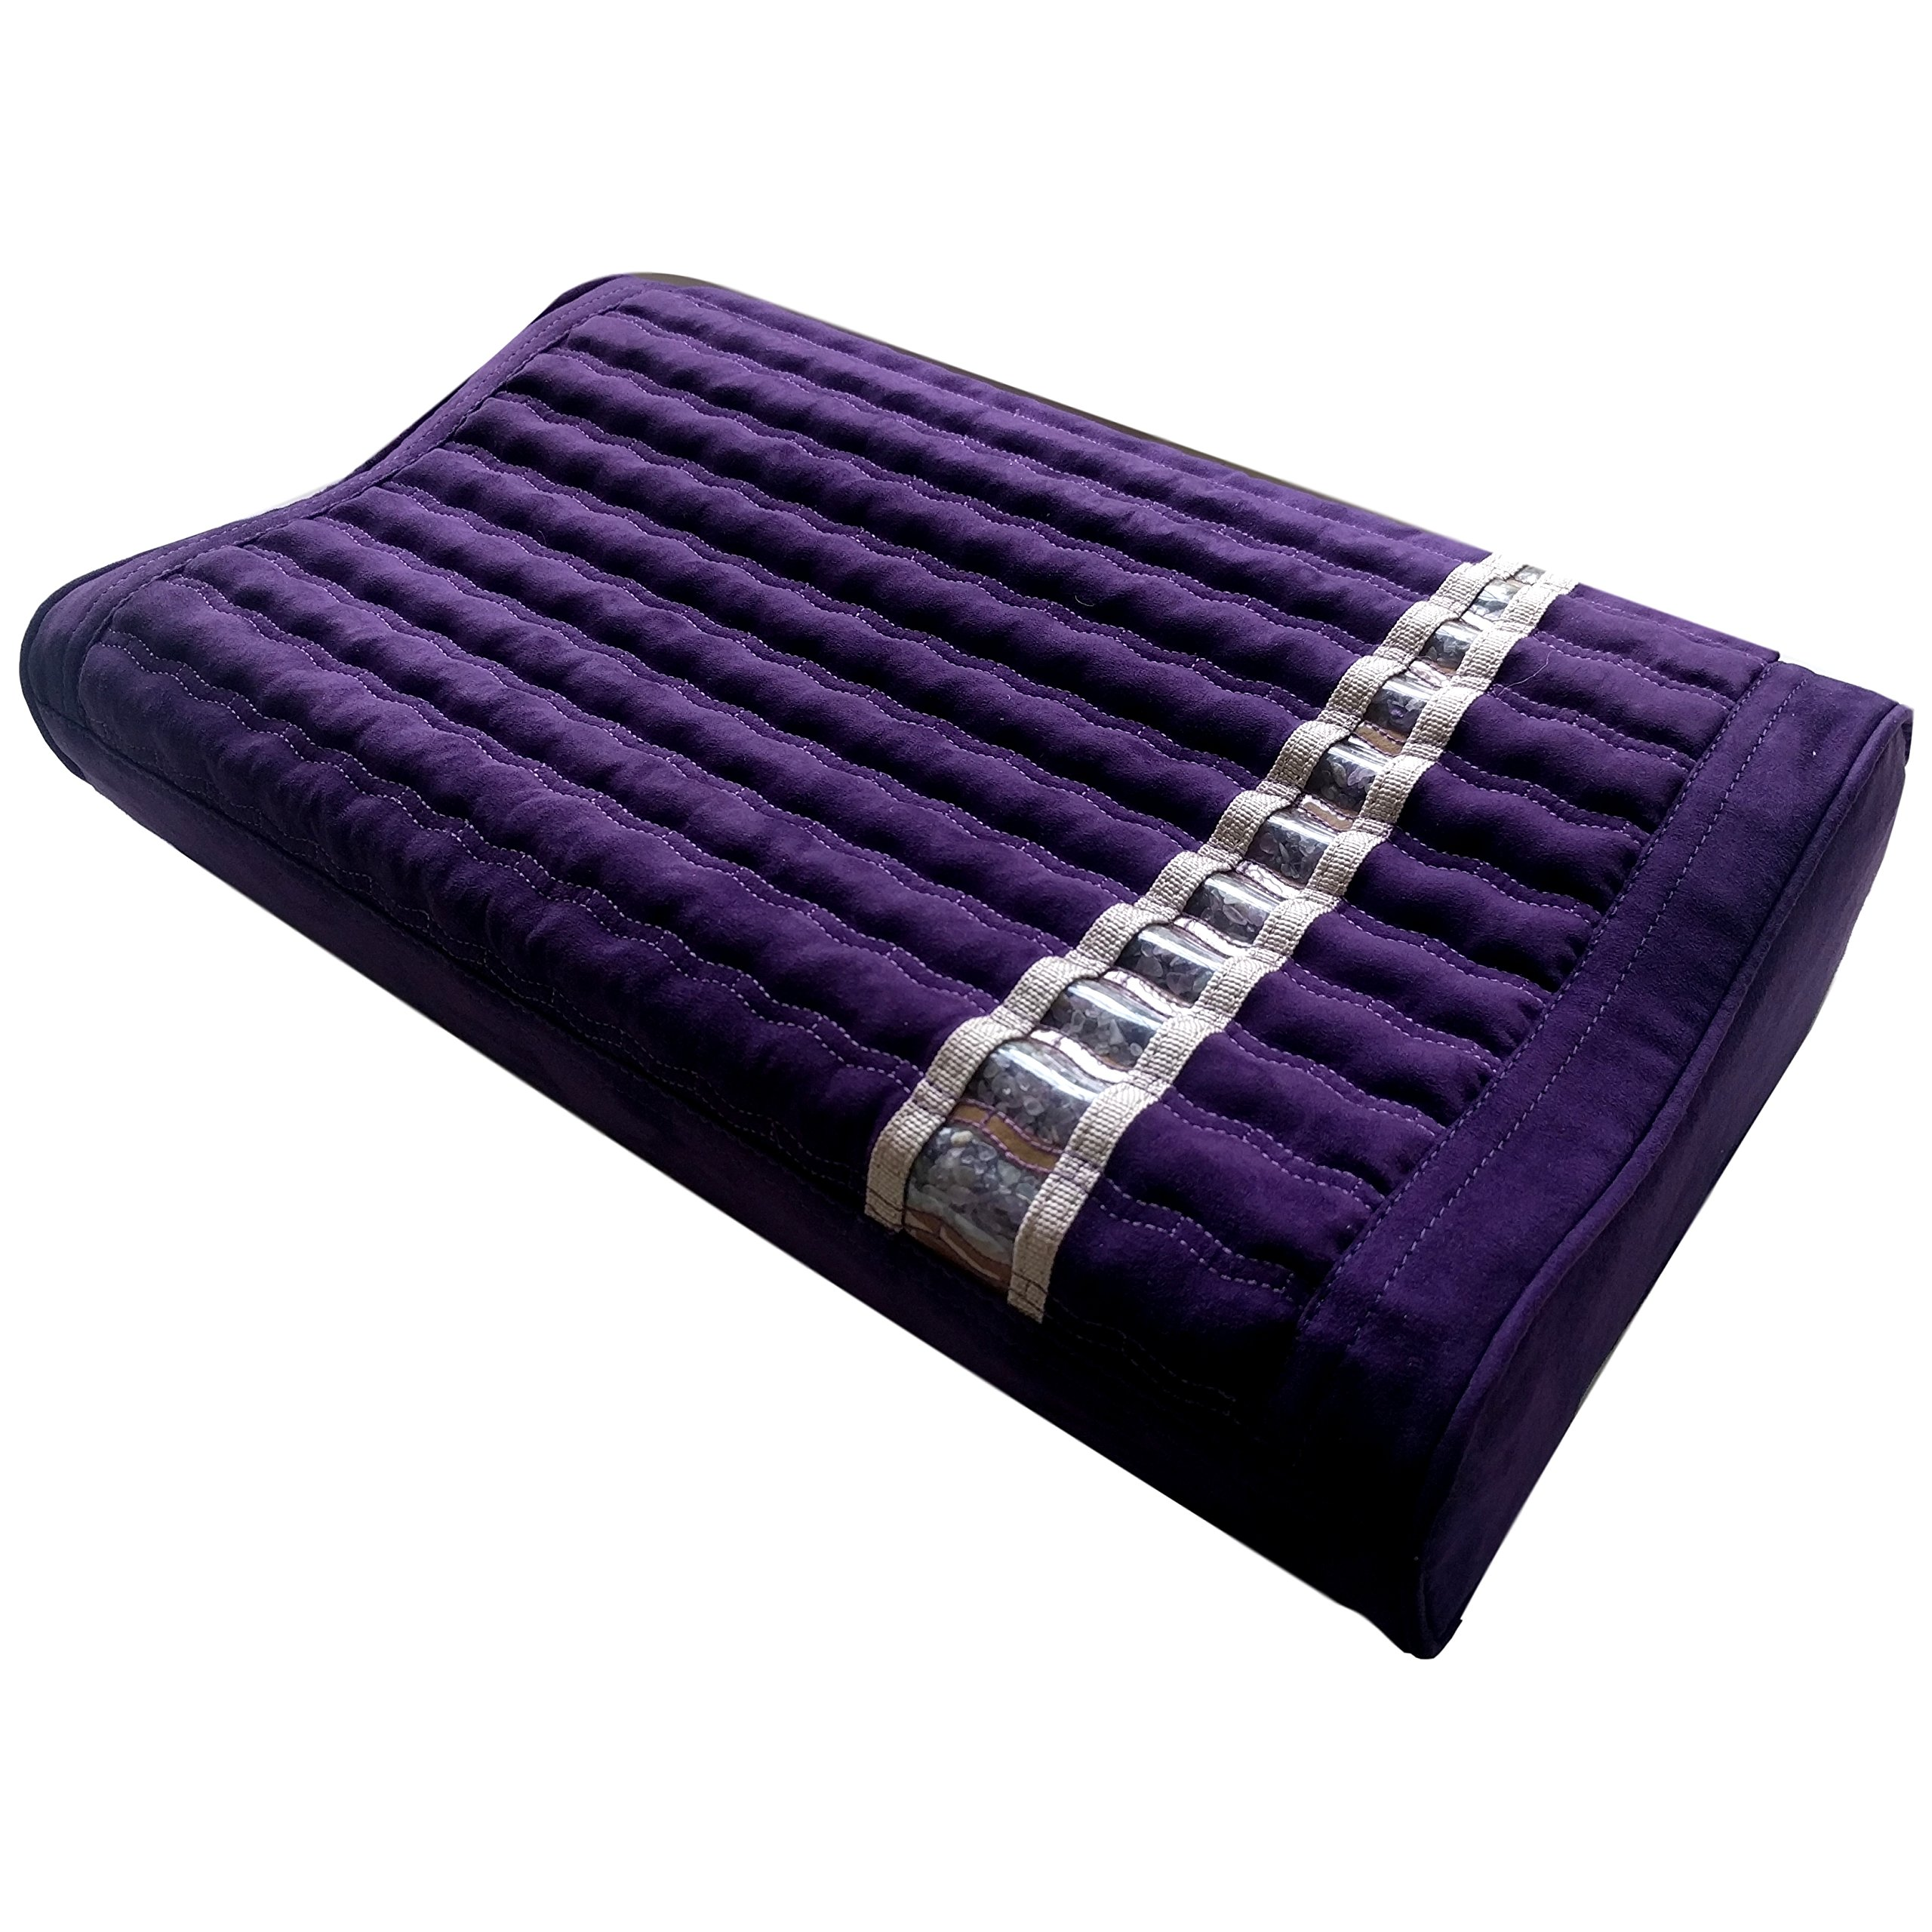 Far Infrared Amethyst Mat Pillow - Emits Negative Ions - Crystal FIR Rays - 100% Natural Amethyst Gemstones - Non Electric - For Headache and Stress Relief - To Sleep Better - GENTLE support - Purple